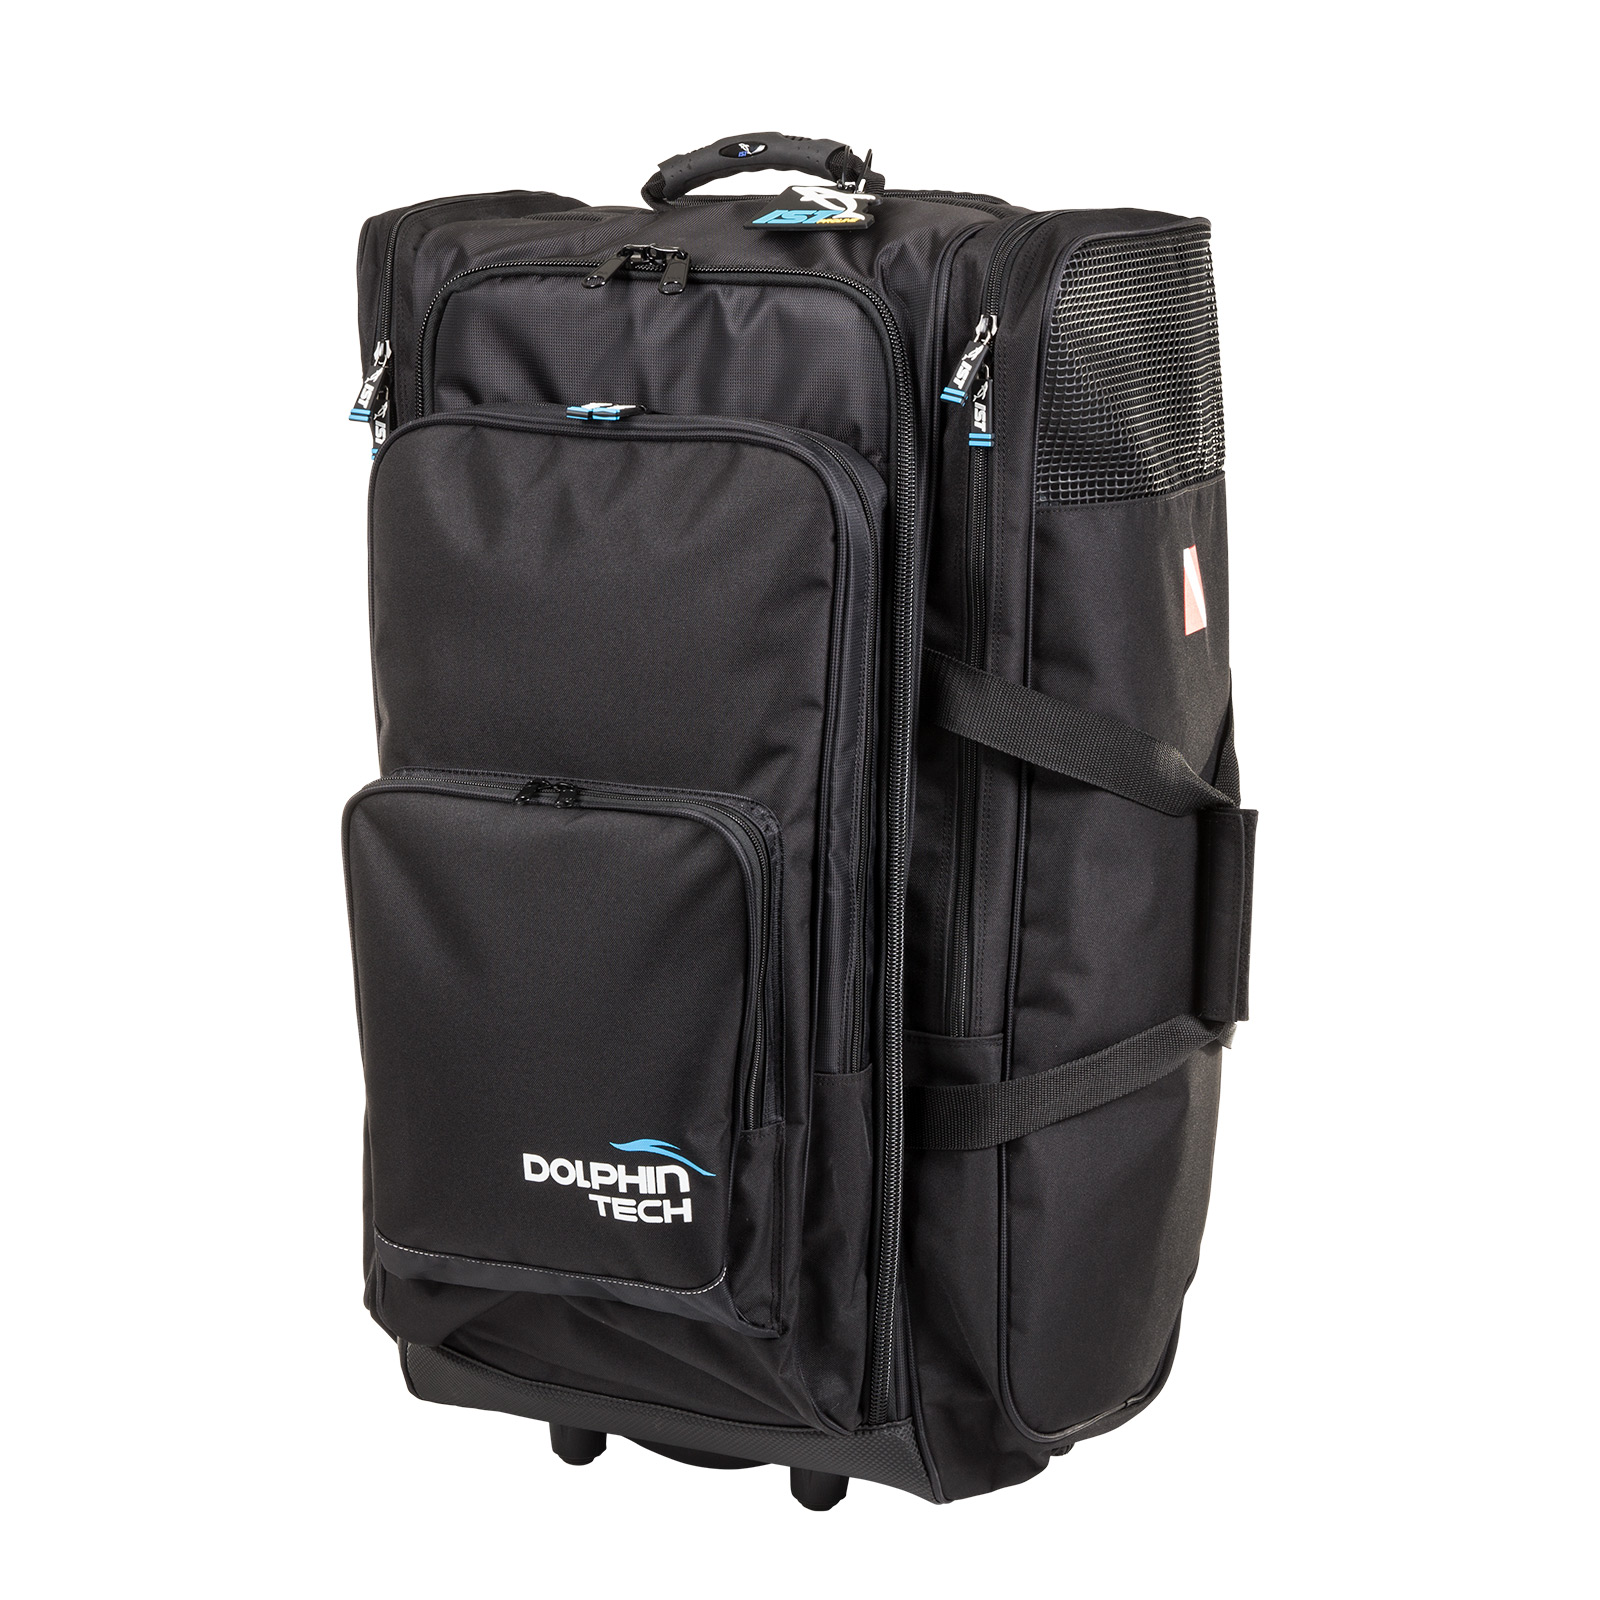 Heavy Duty Roller Bag & Backpack